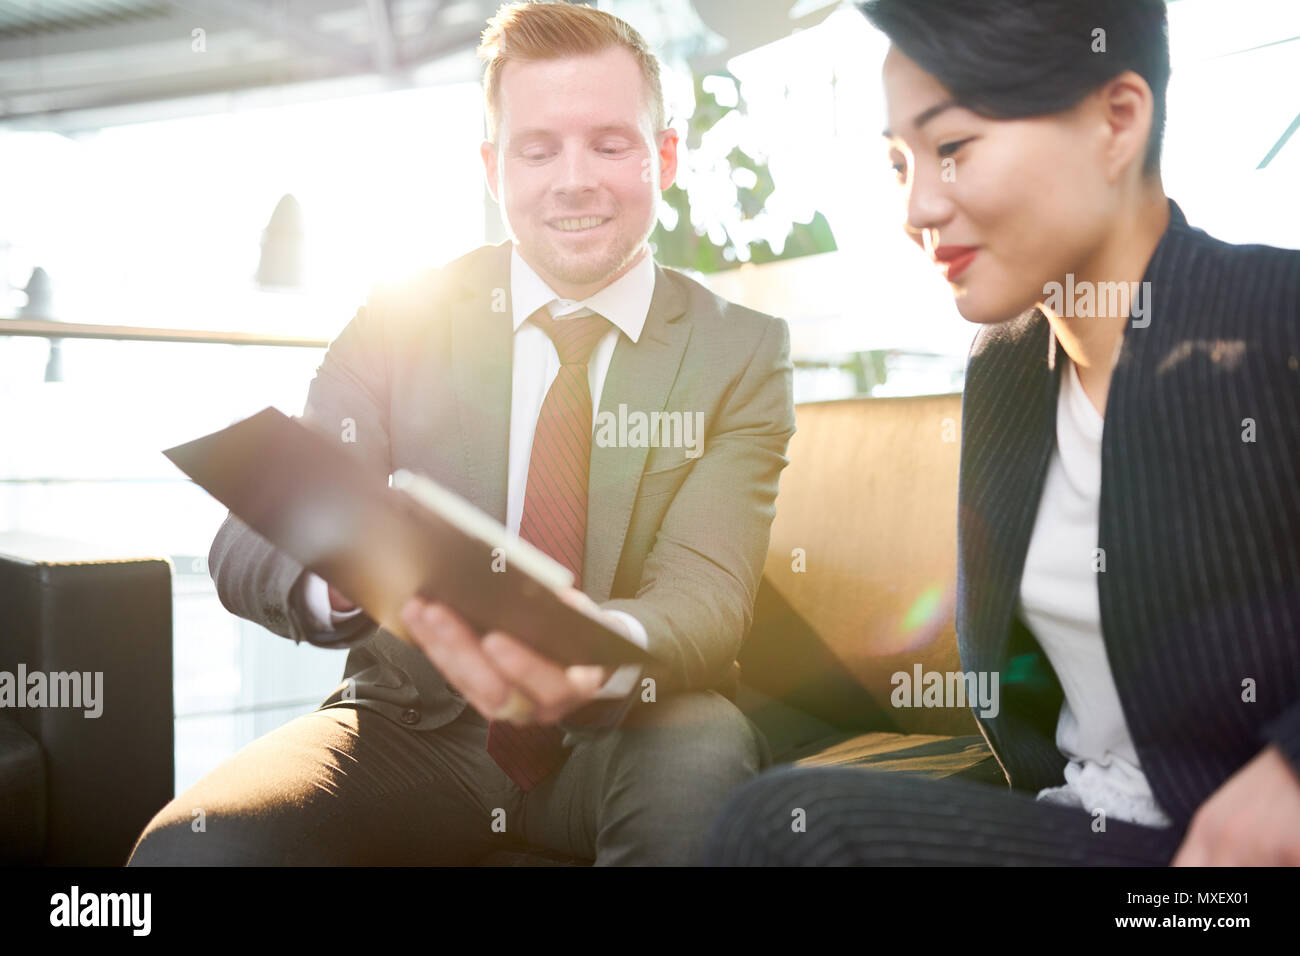 Project Discussion with Male Colleague - Stock Image